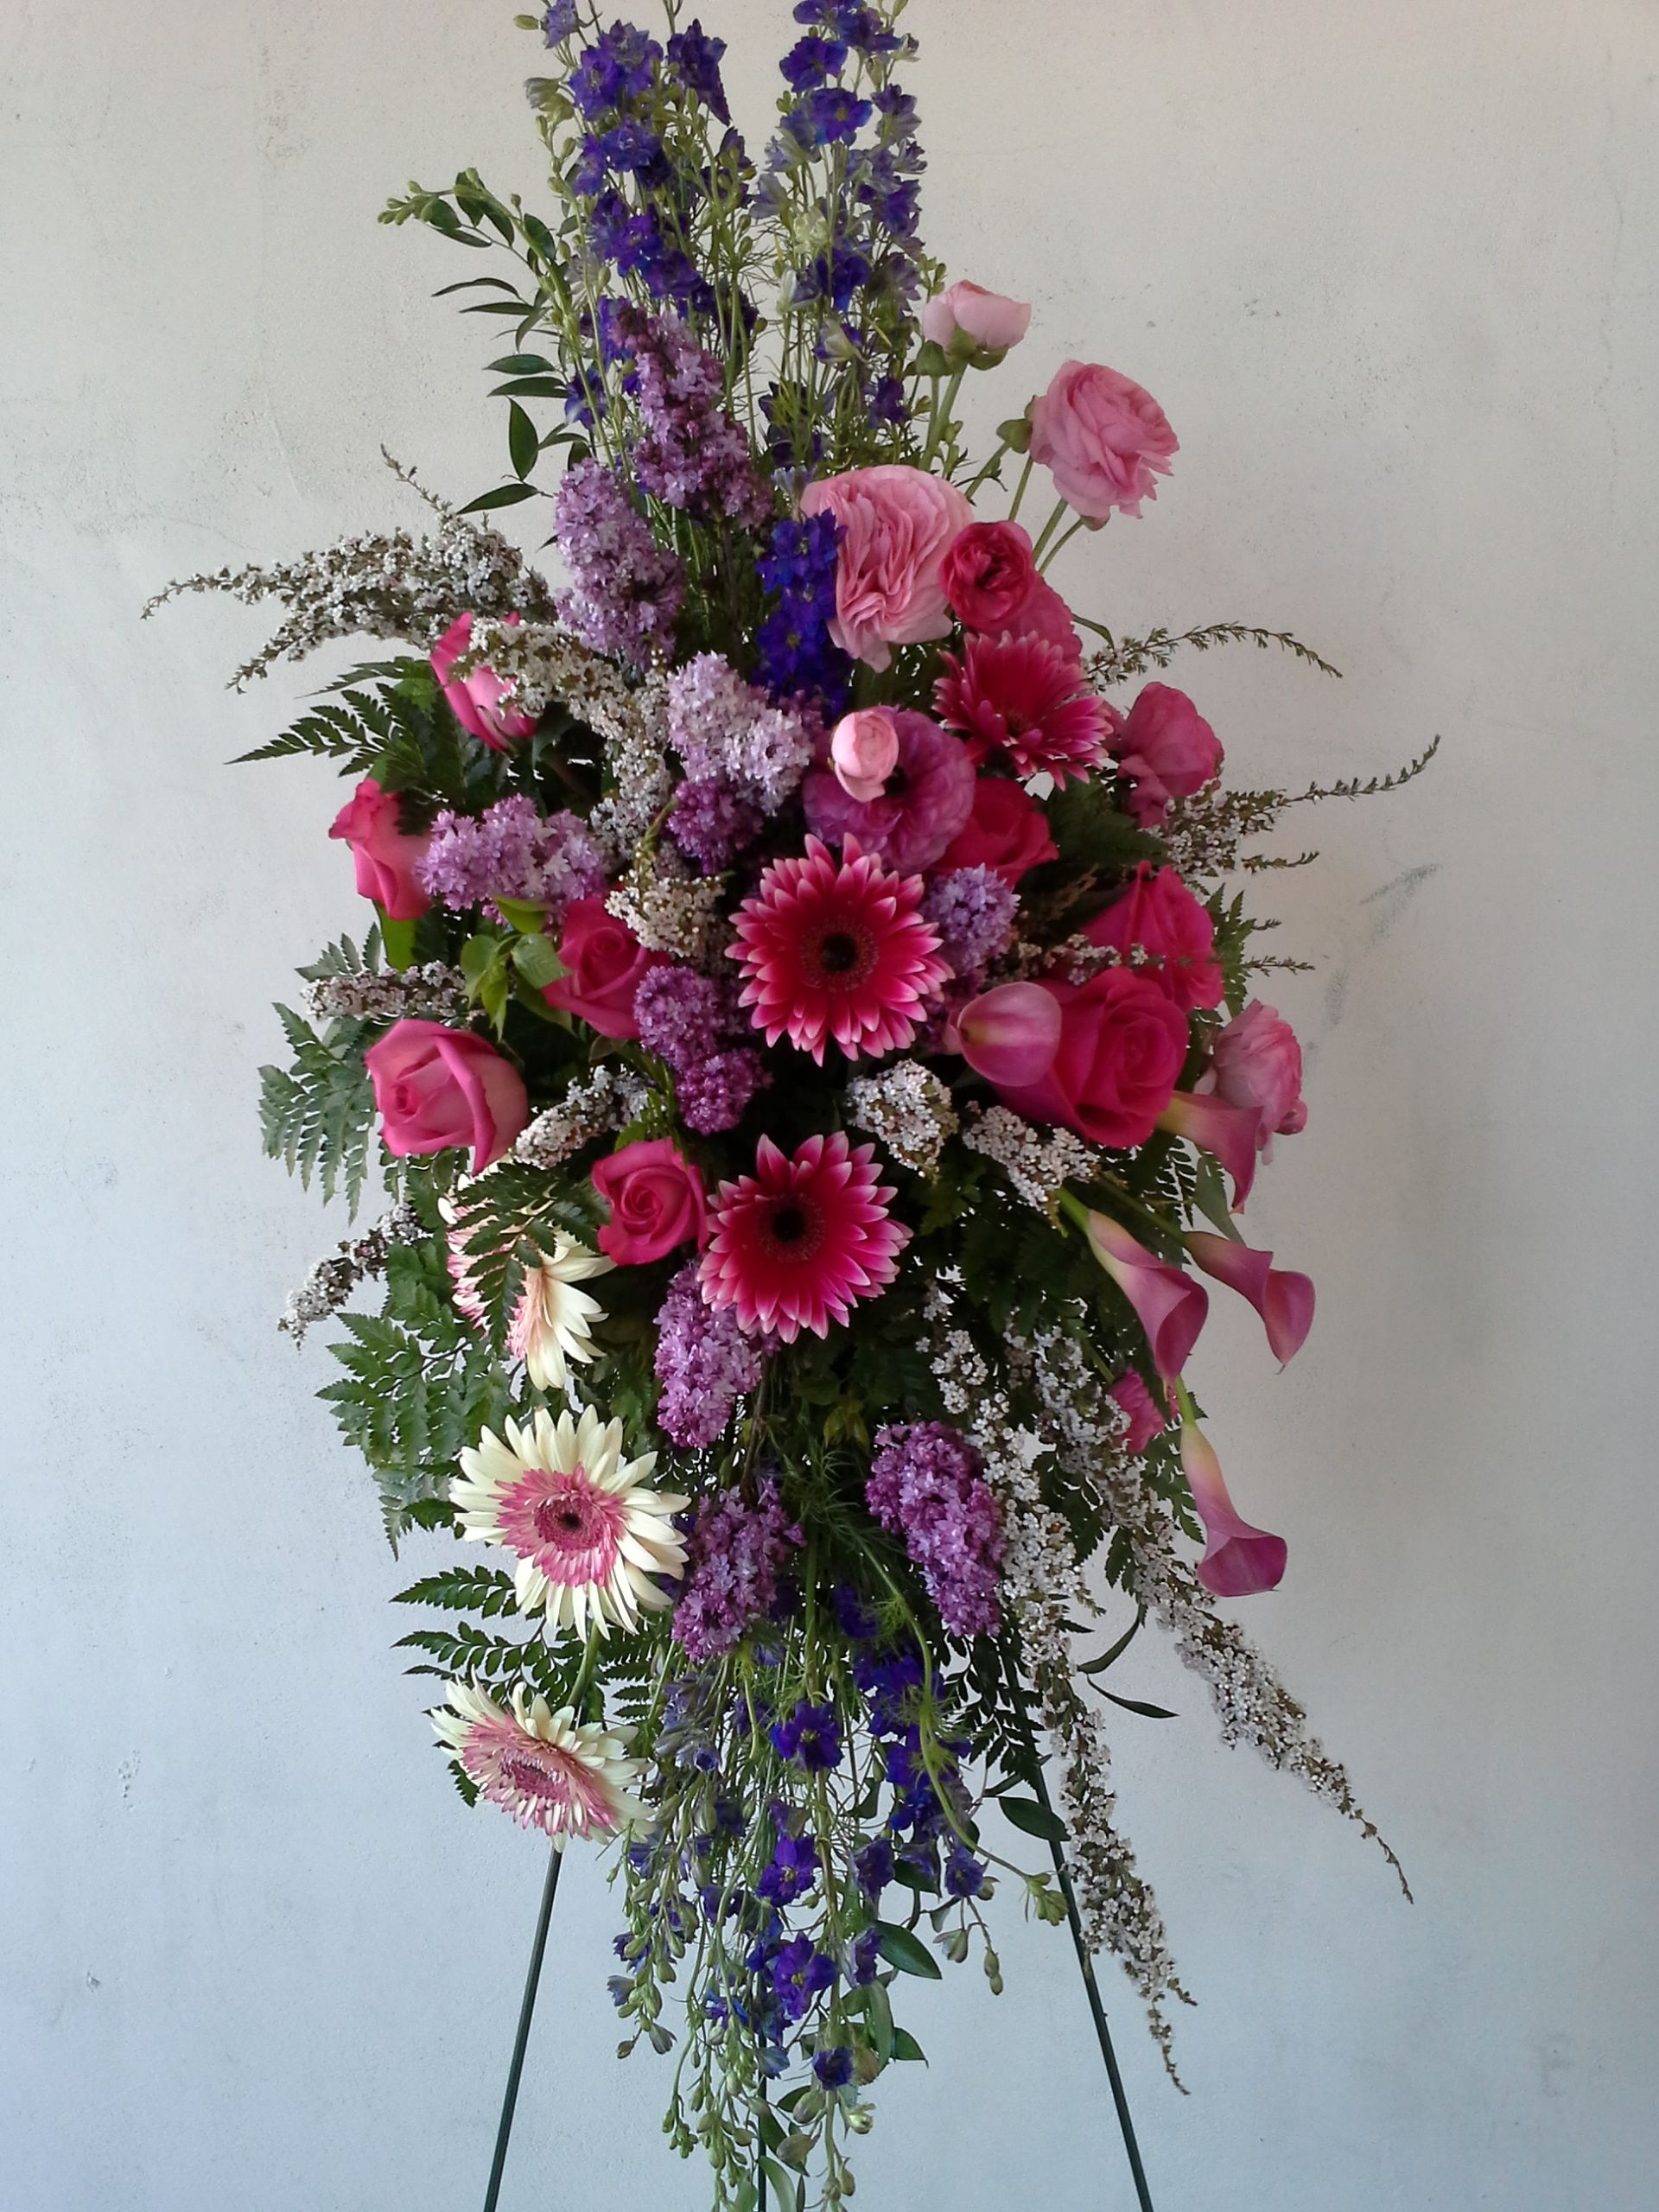 Funeral spray in purples lavender and pinks four seasons funeral spray in purples lavender and pinks izmirmasajfo